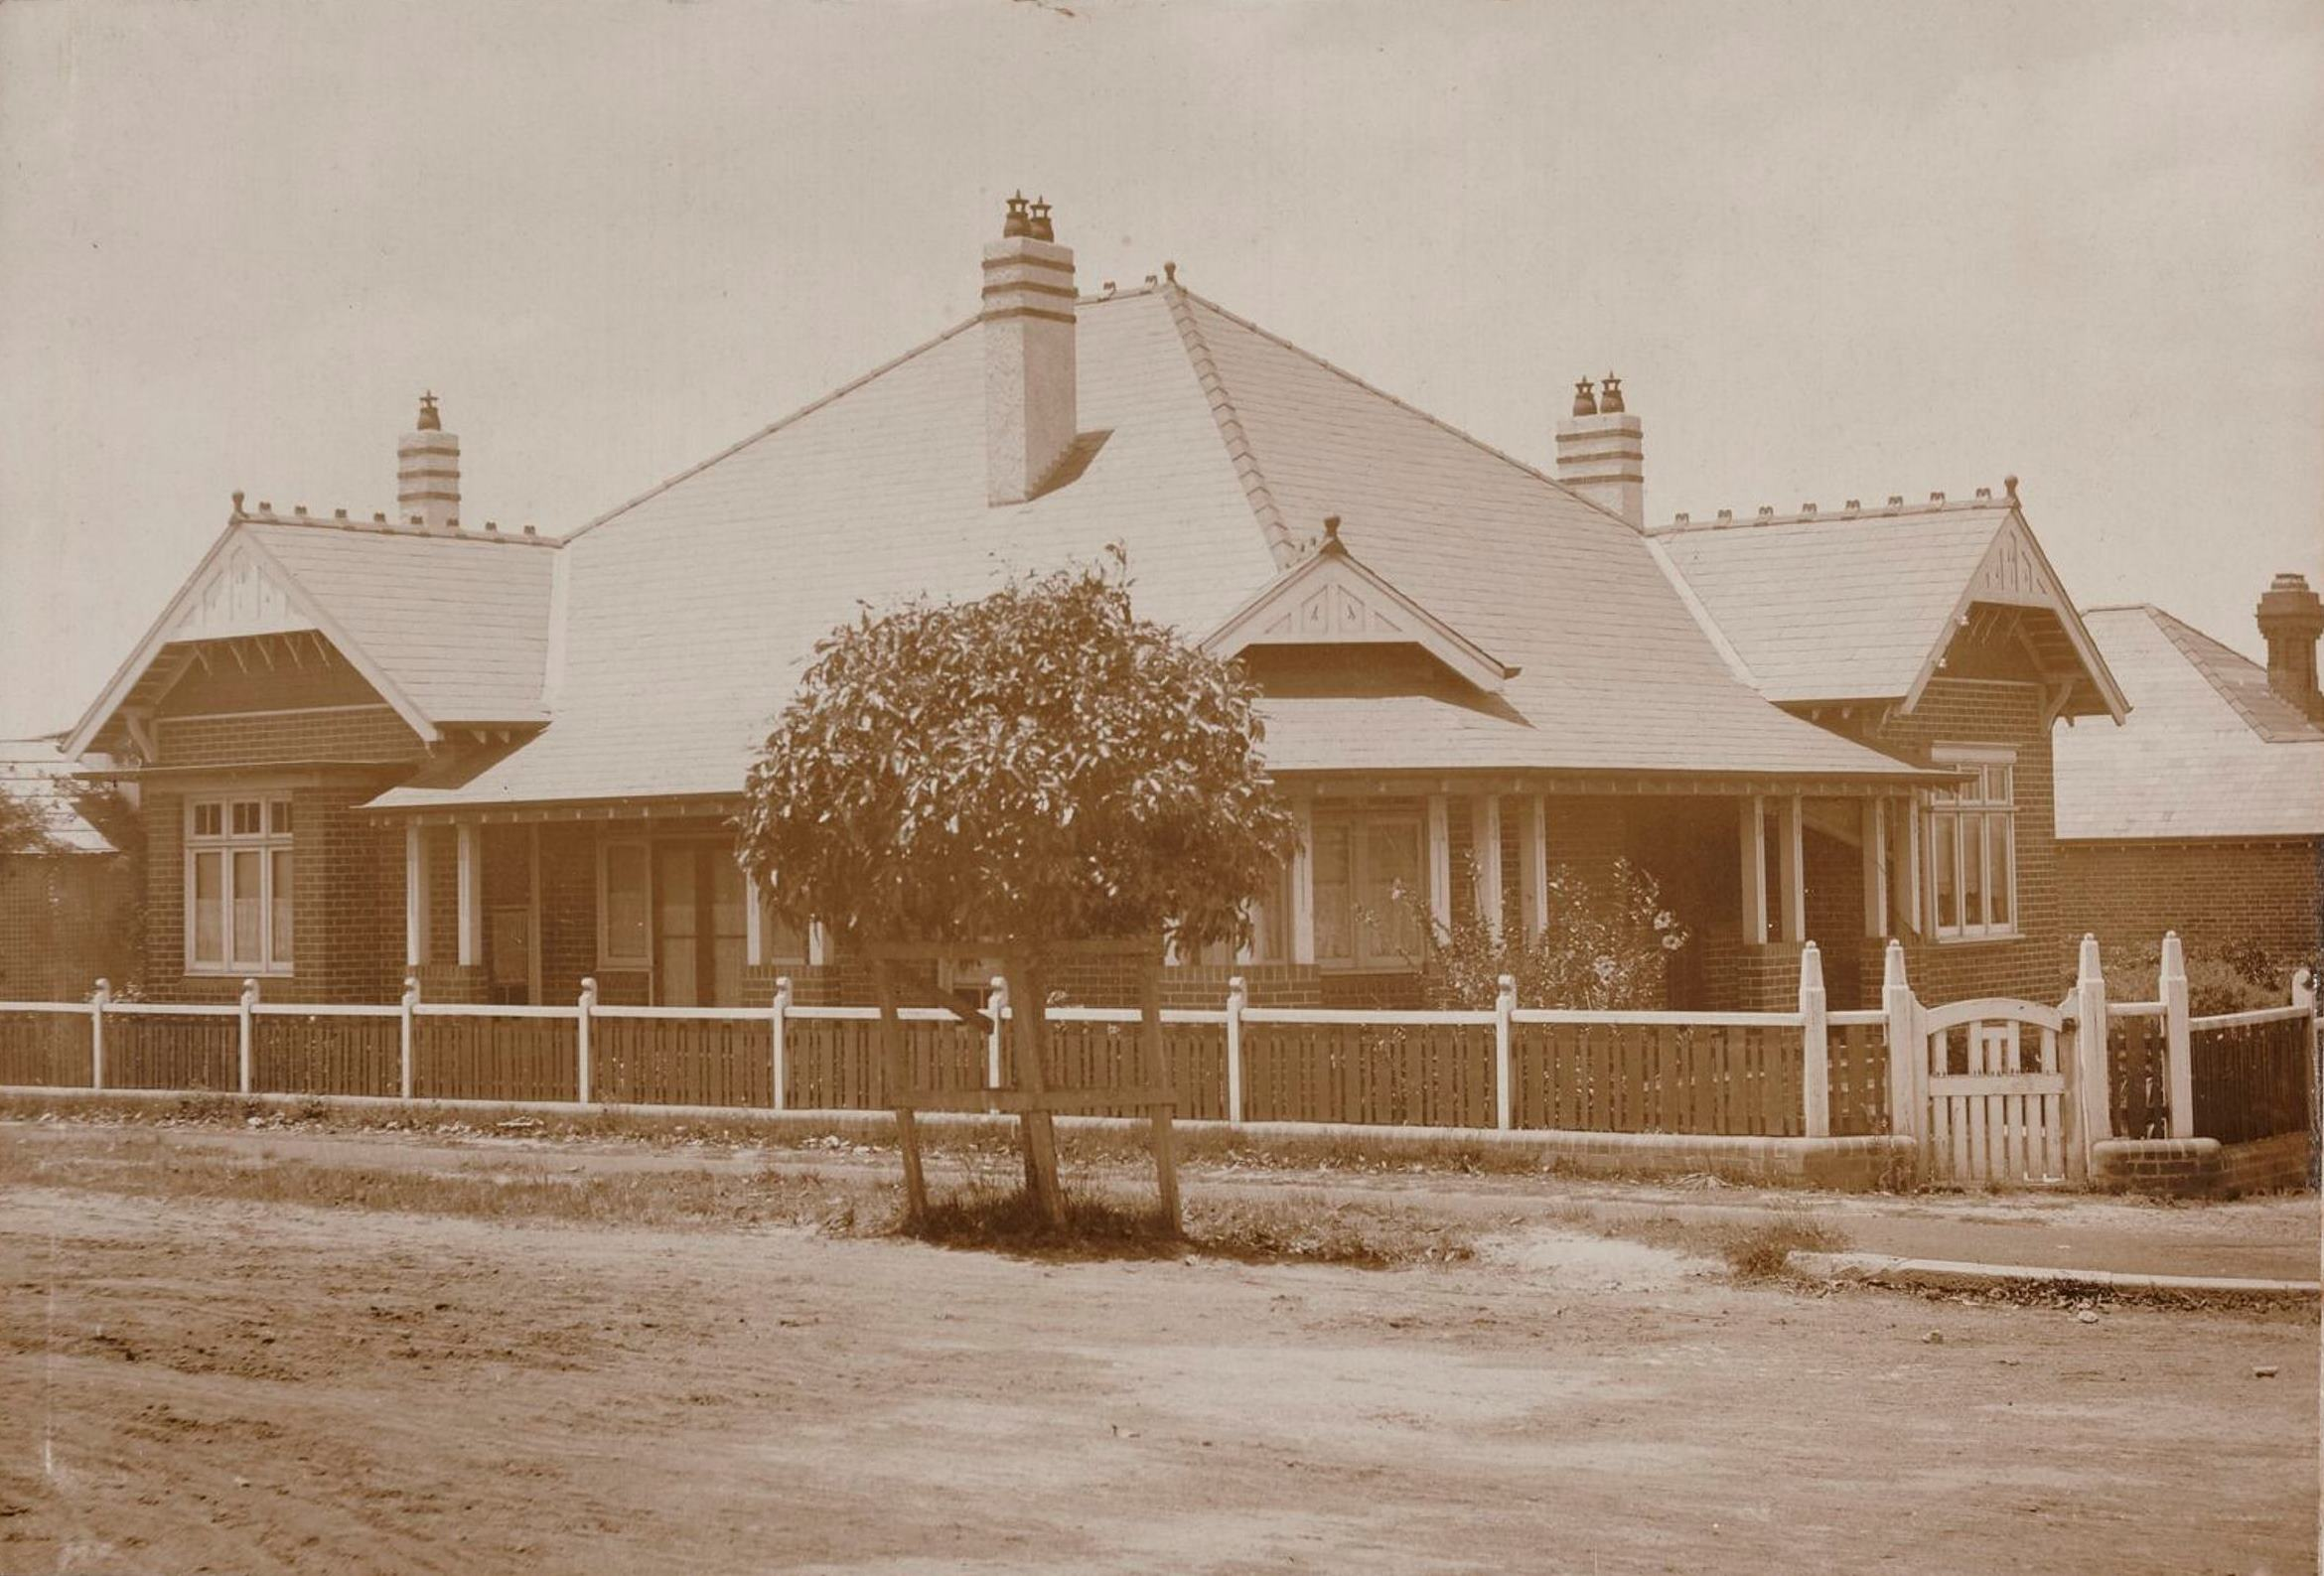 Urana, 27 Turner Avenue, corner of Kingston Street, Haberfield, N.S.W. around 1913  / photographer unknown